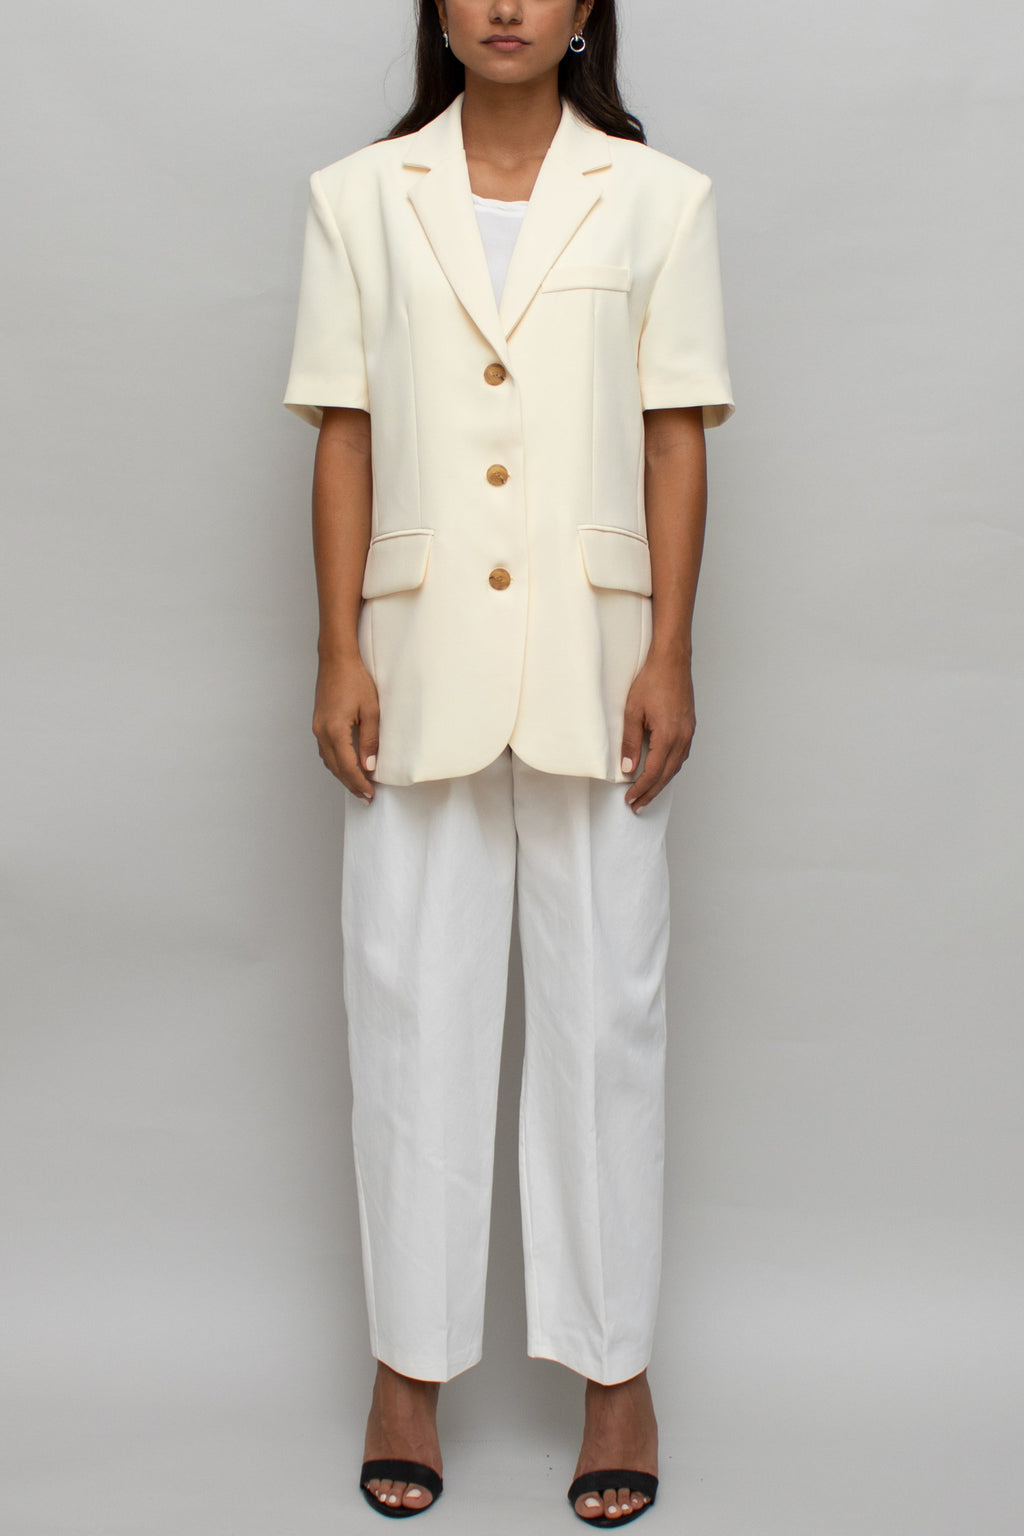 Short Sleeve Pale Yellow Blazer